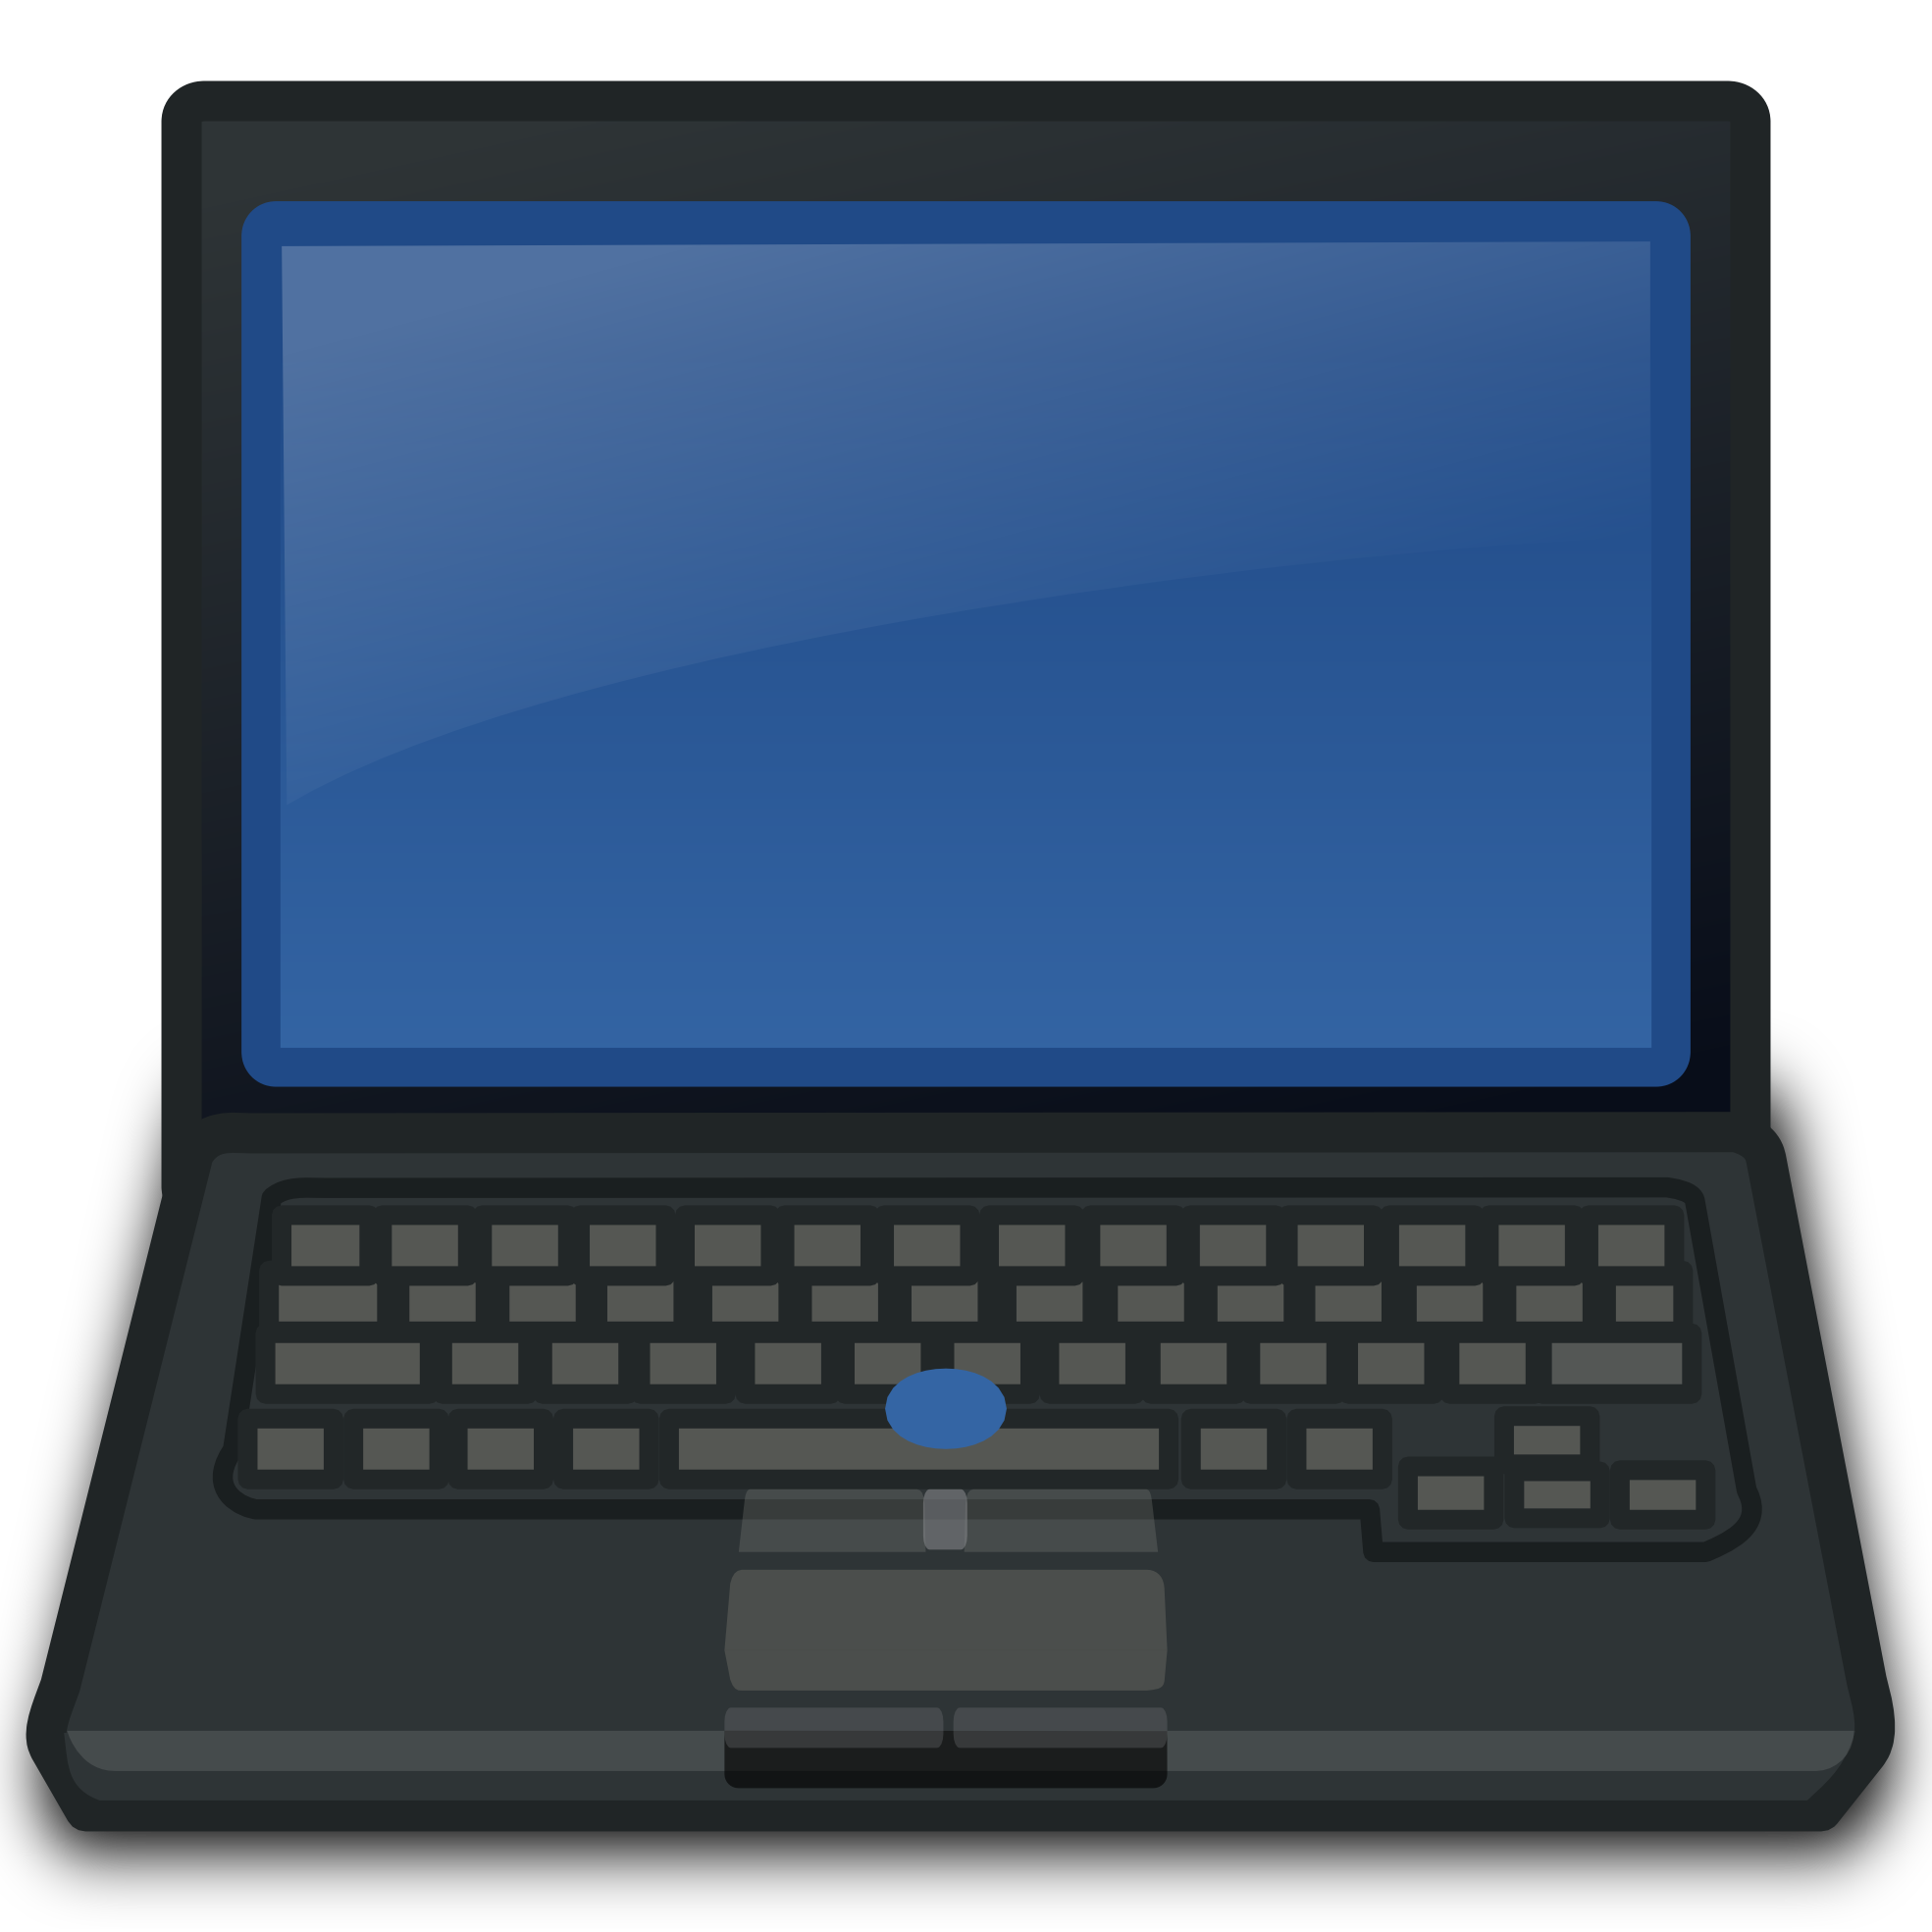 Laptop Computer Clipart For .